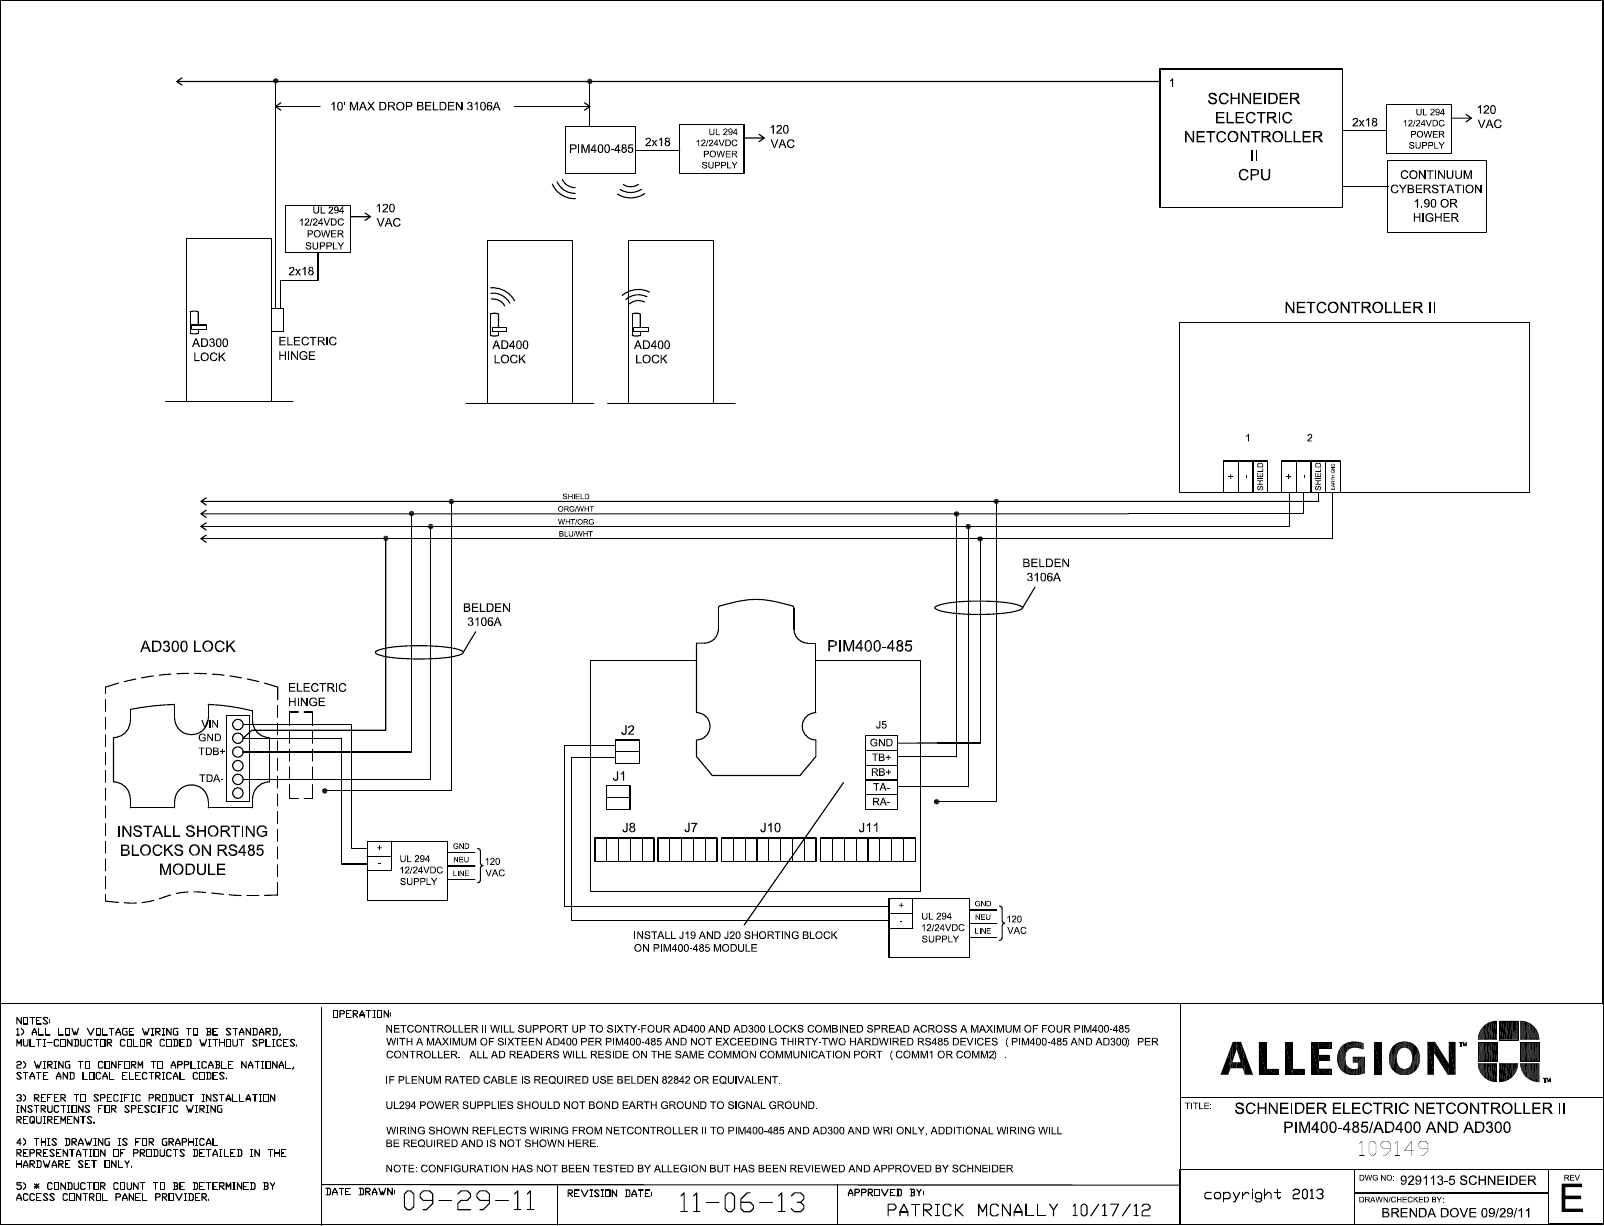 Schlage Electronics C Ad300 Ad400 Wiring Diagram Schneider Page 1 Of Netcontroller Ii Rs485